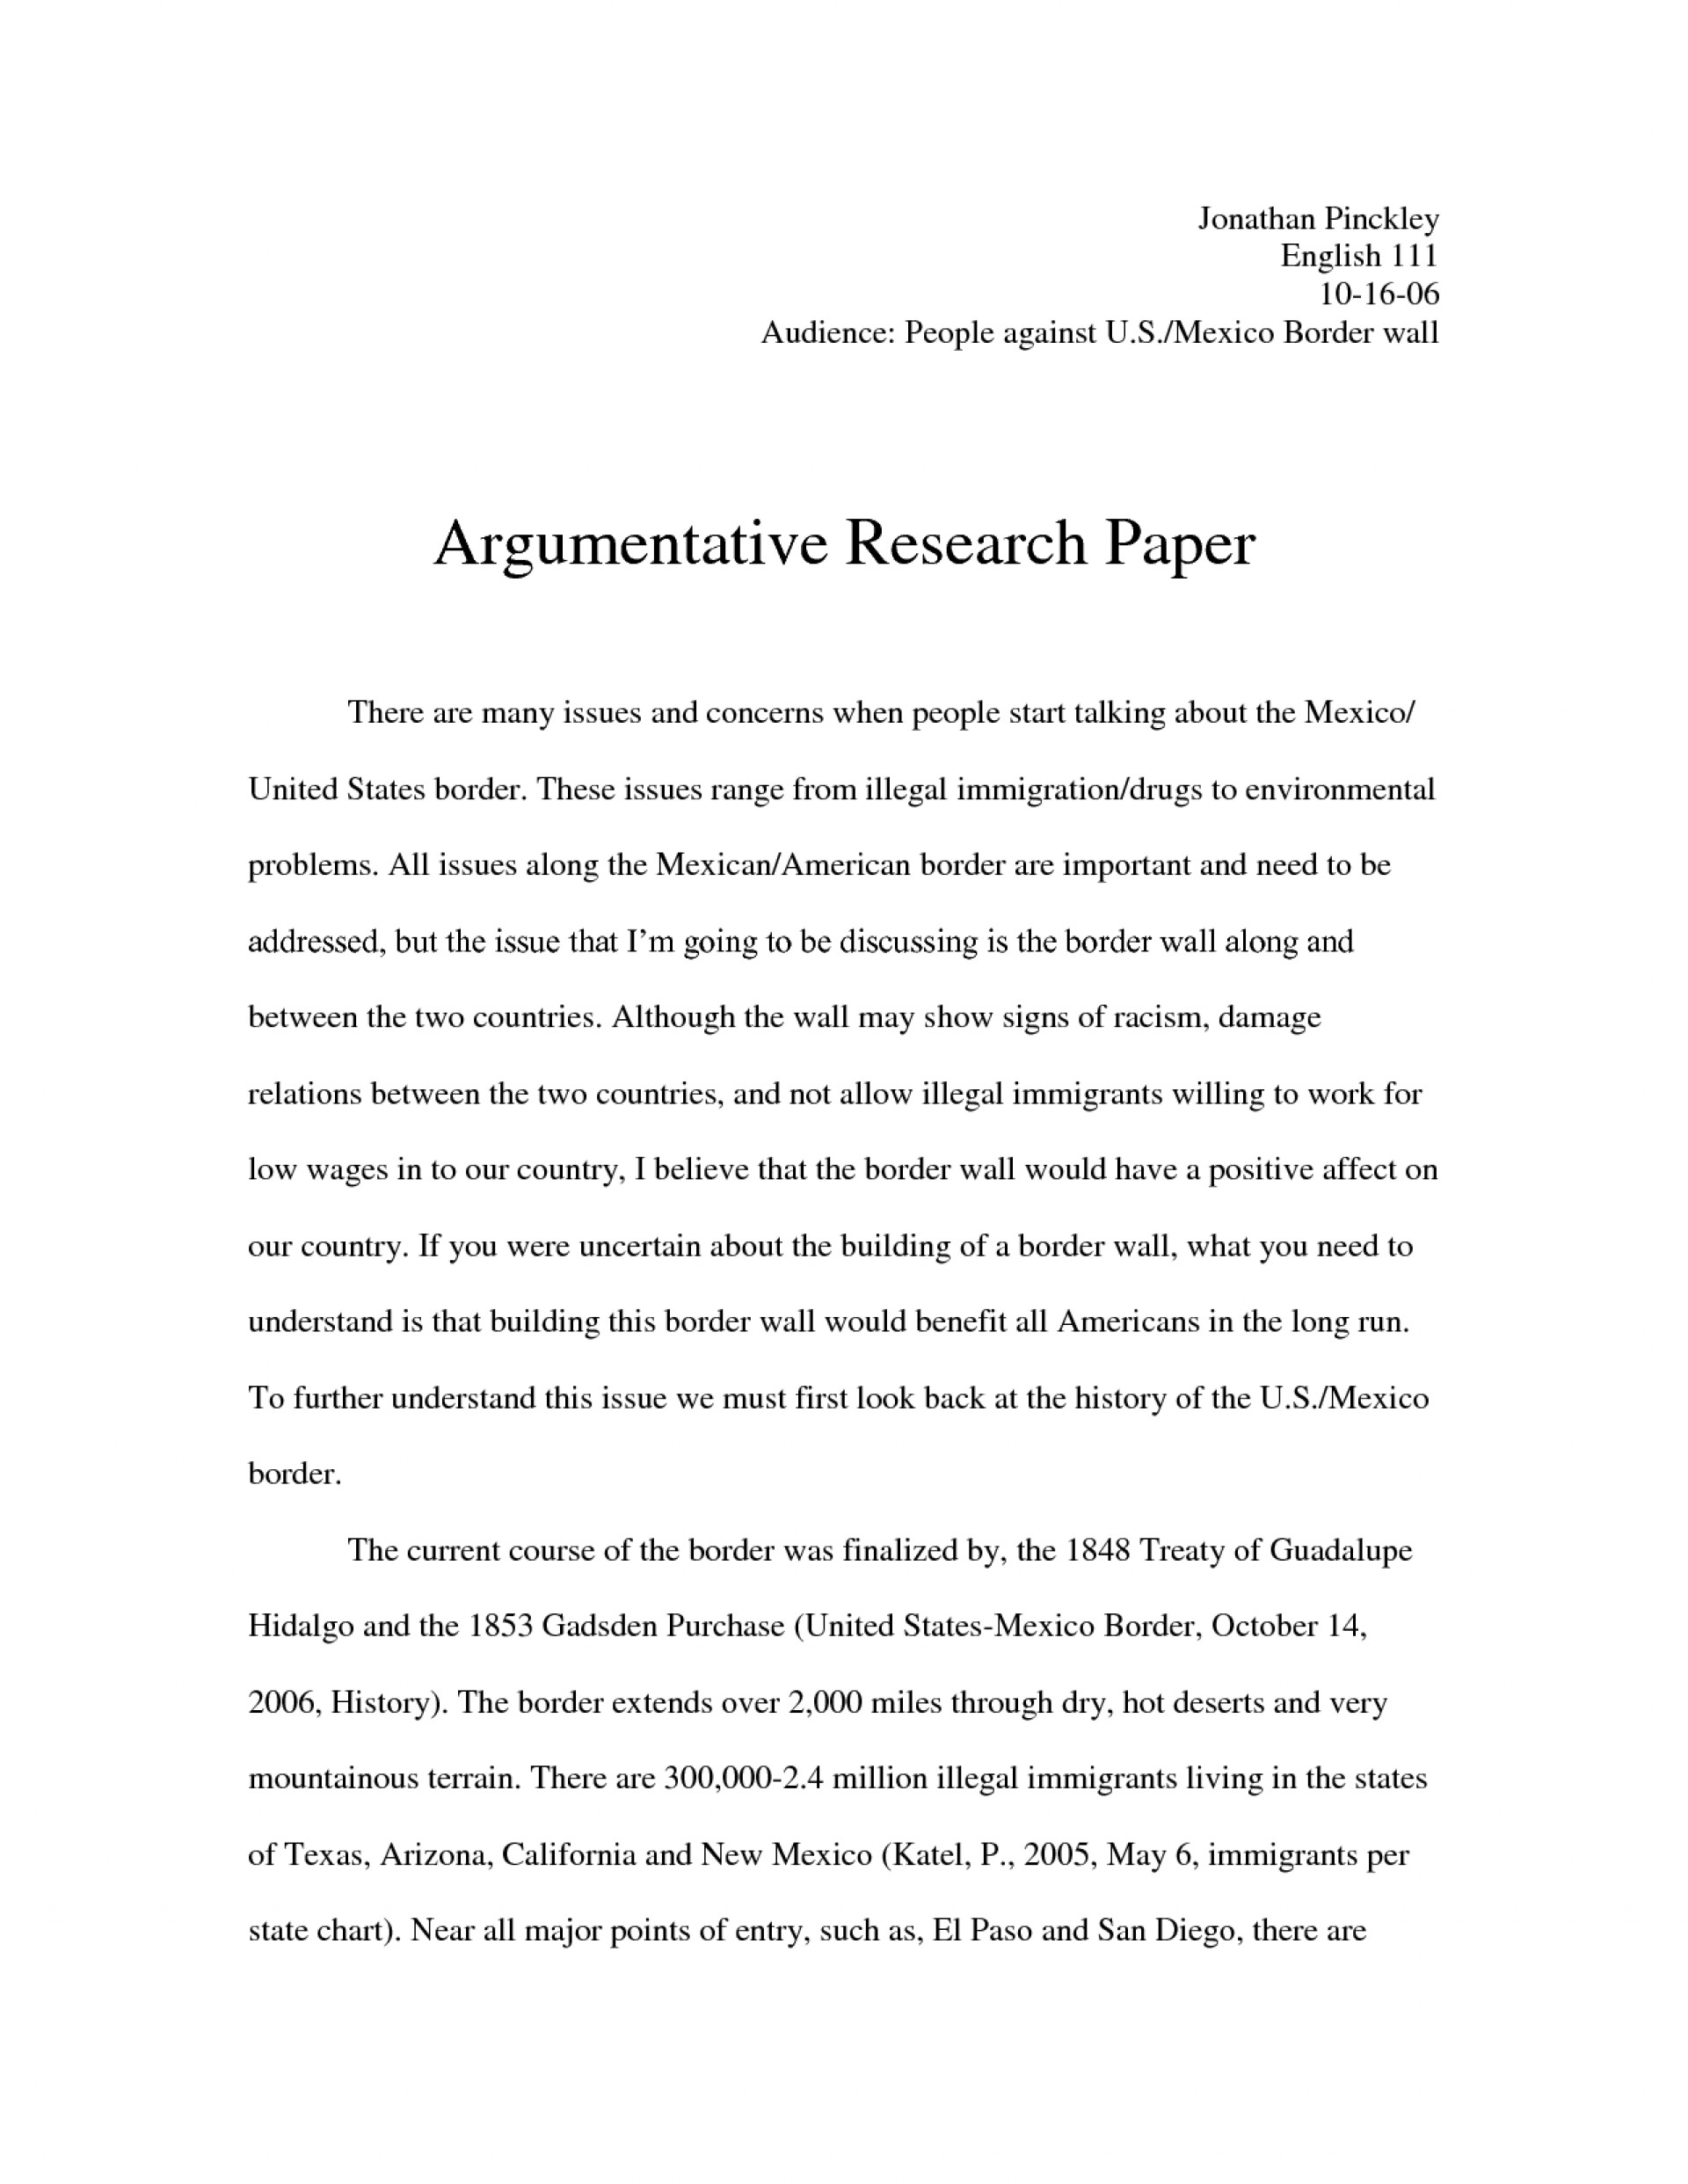 024 Interesting Topics For Argumentative Research Paper Uncategorized Debate20y Thesis High School Sentence Starters Outline Worksheet Archaicawful Easy Papers 1920